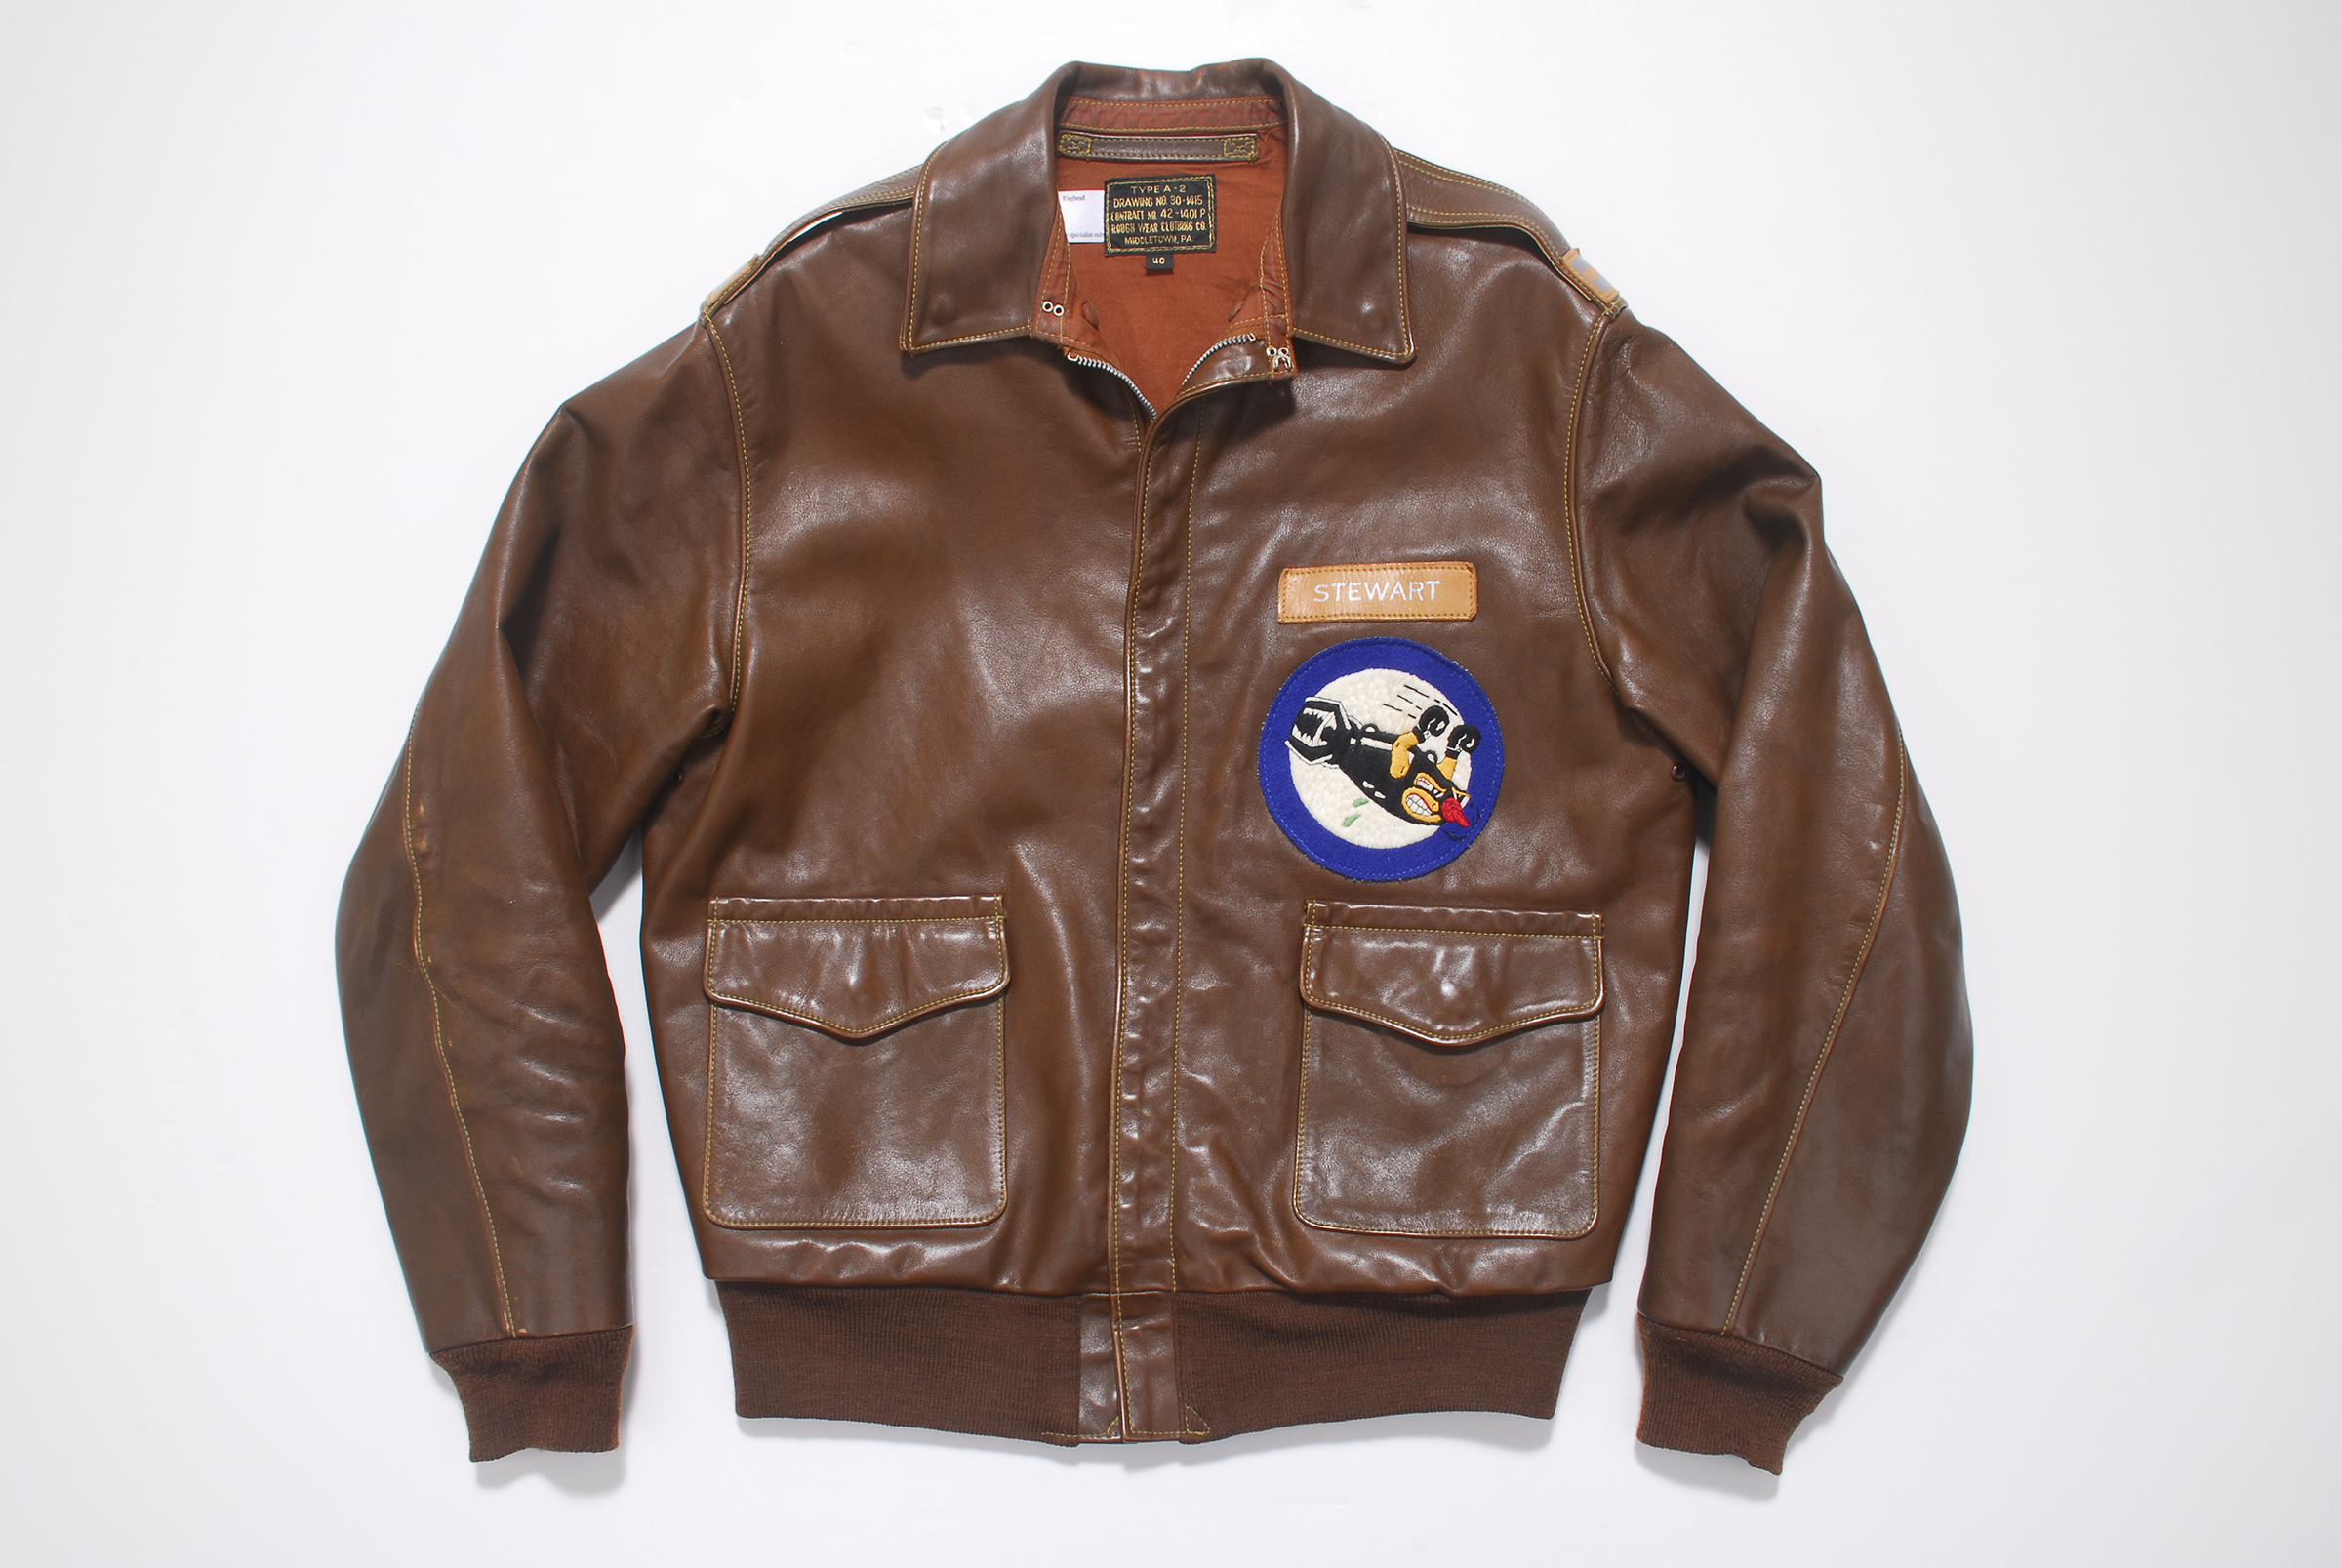 Eastman A-2 Flying Jacket Rough Wear Clothing Co. 1401-P 40R Jimmy Stewart Tribute Image